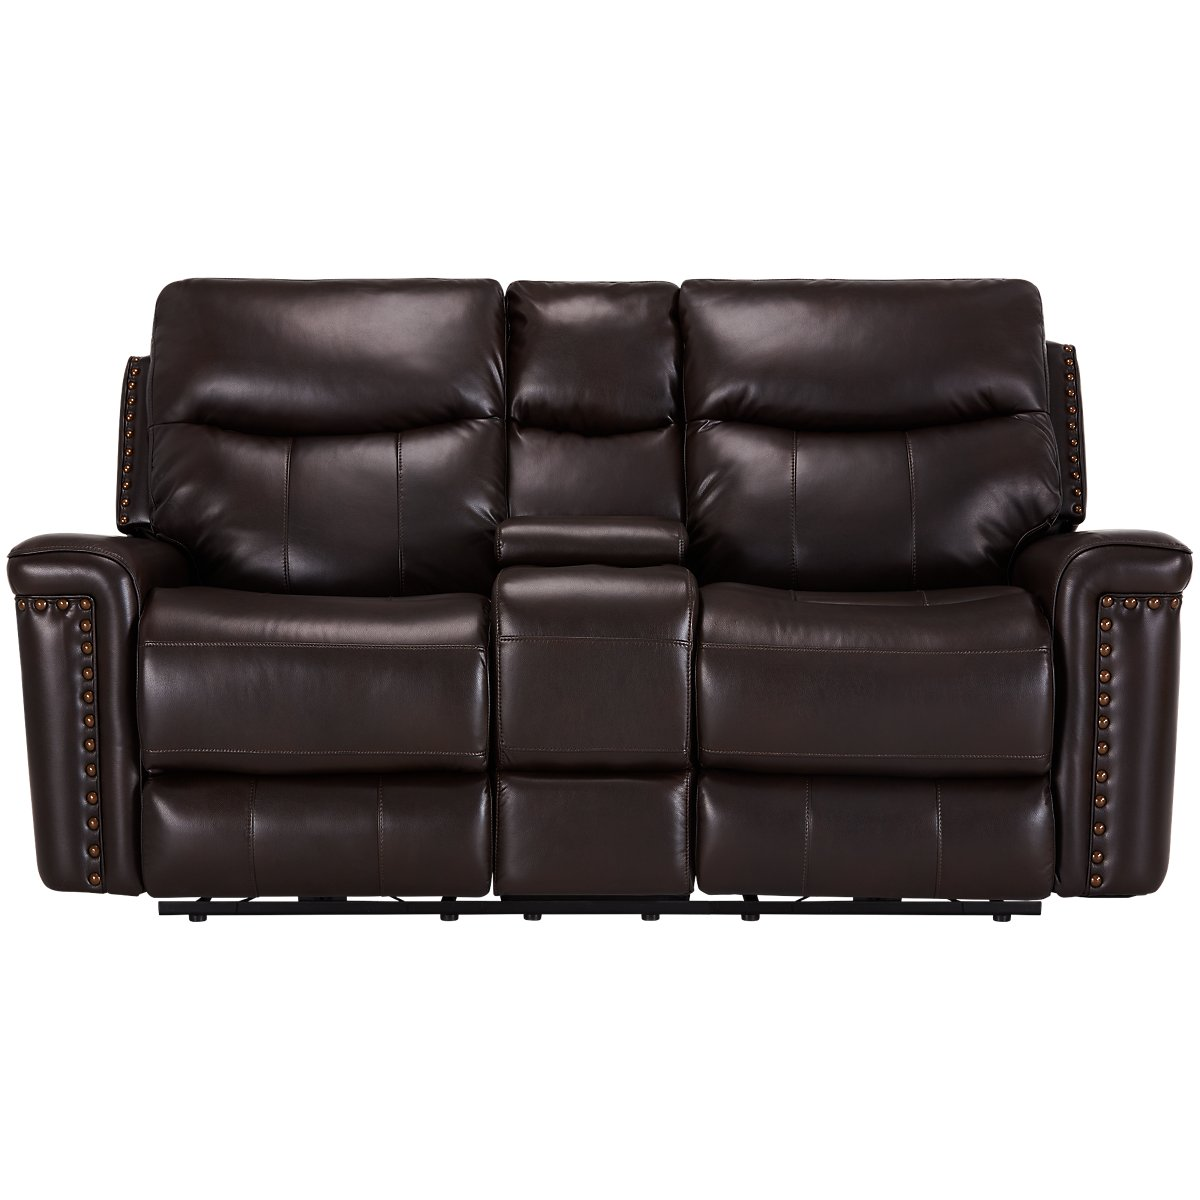 City Furniture Wallace Dark Brown Microfiber Reclining